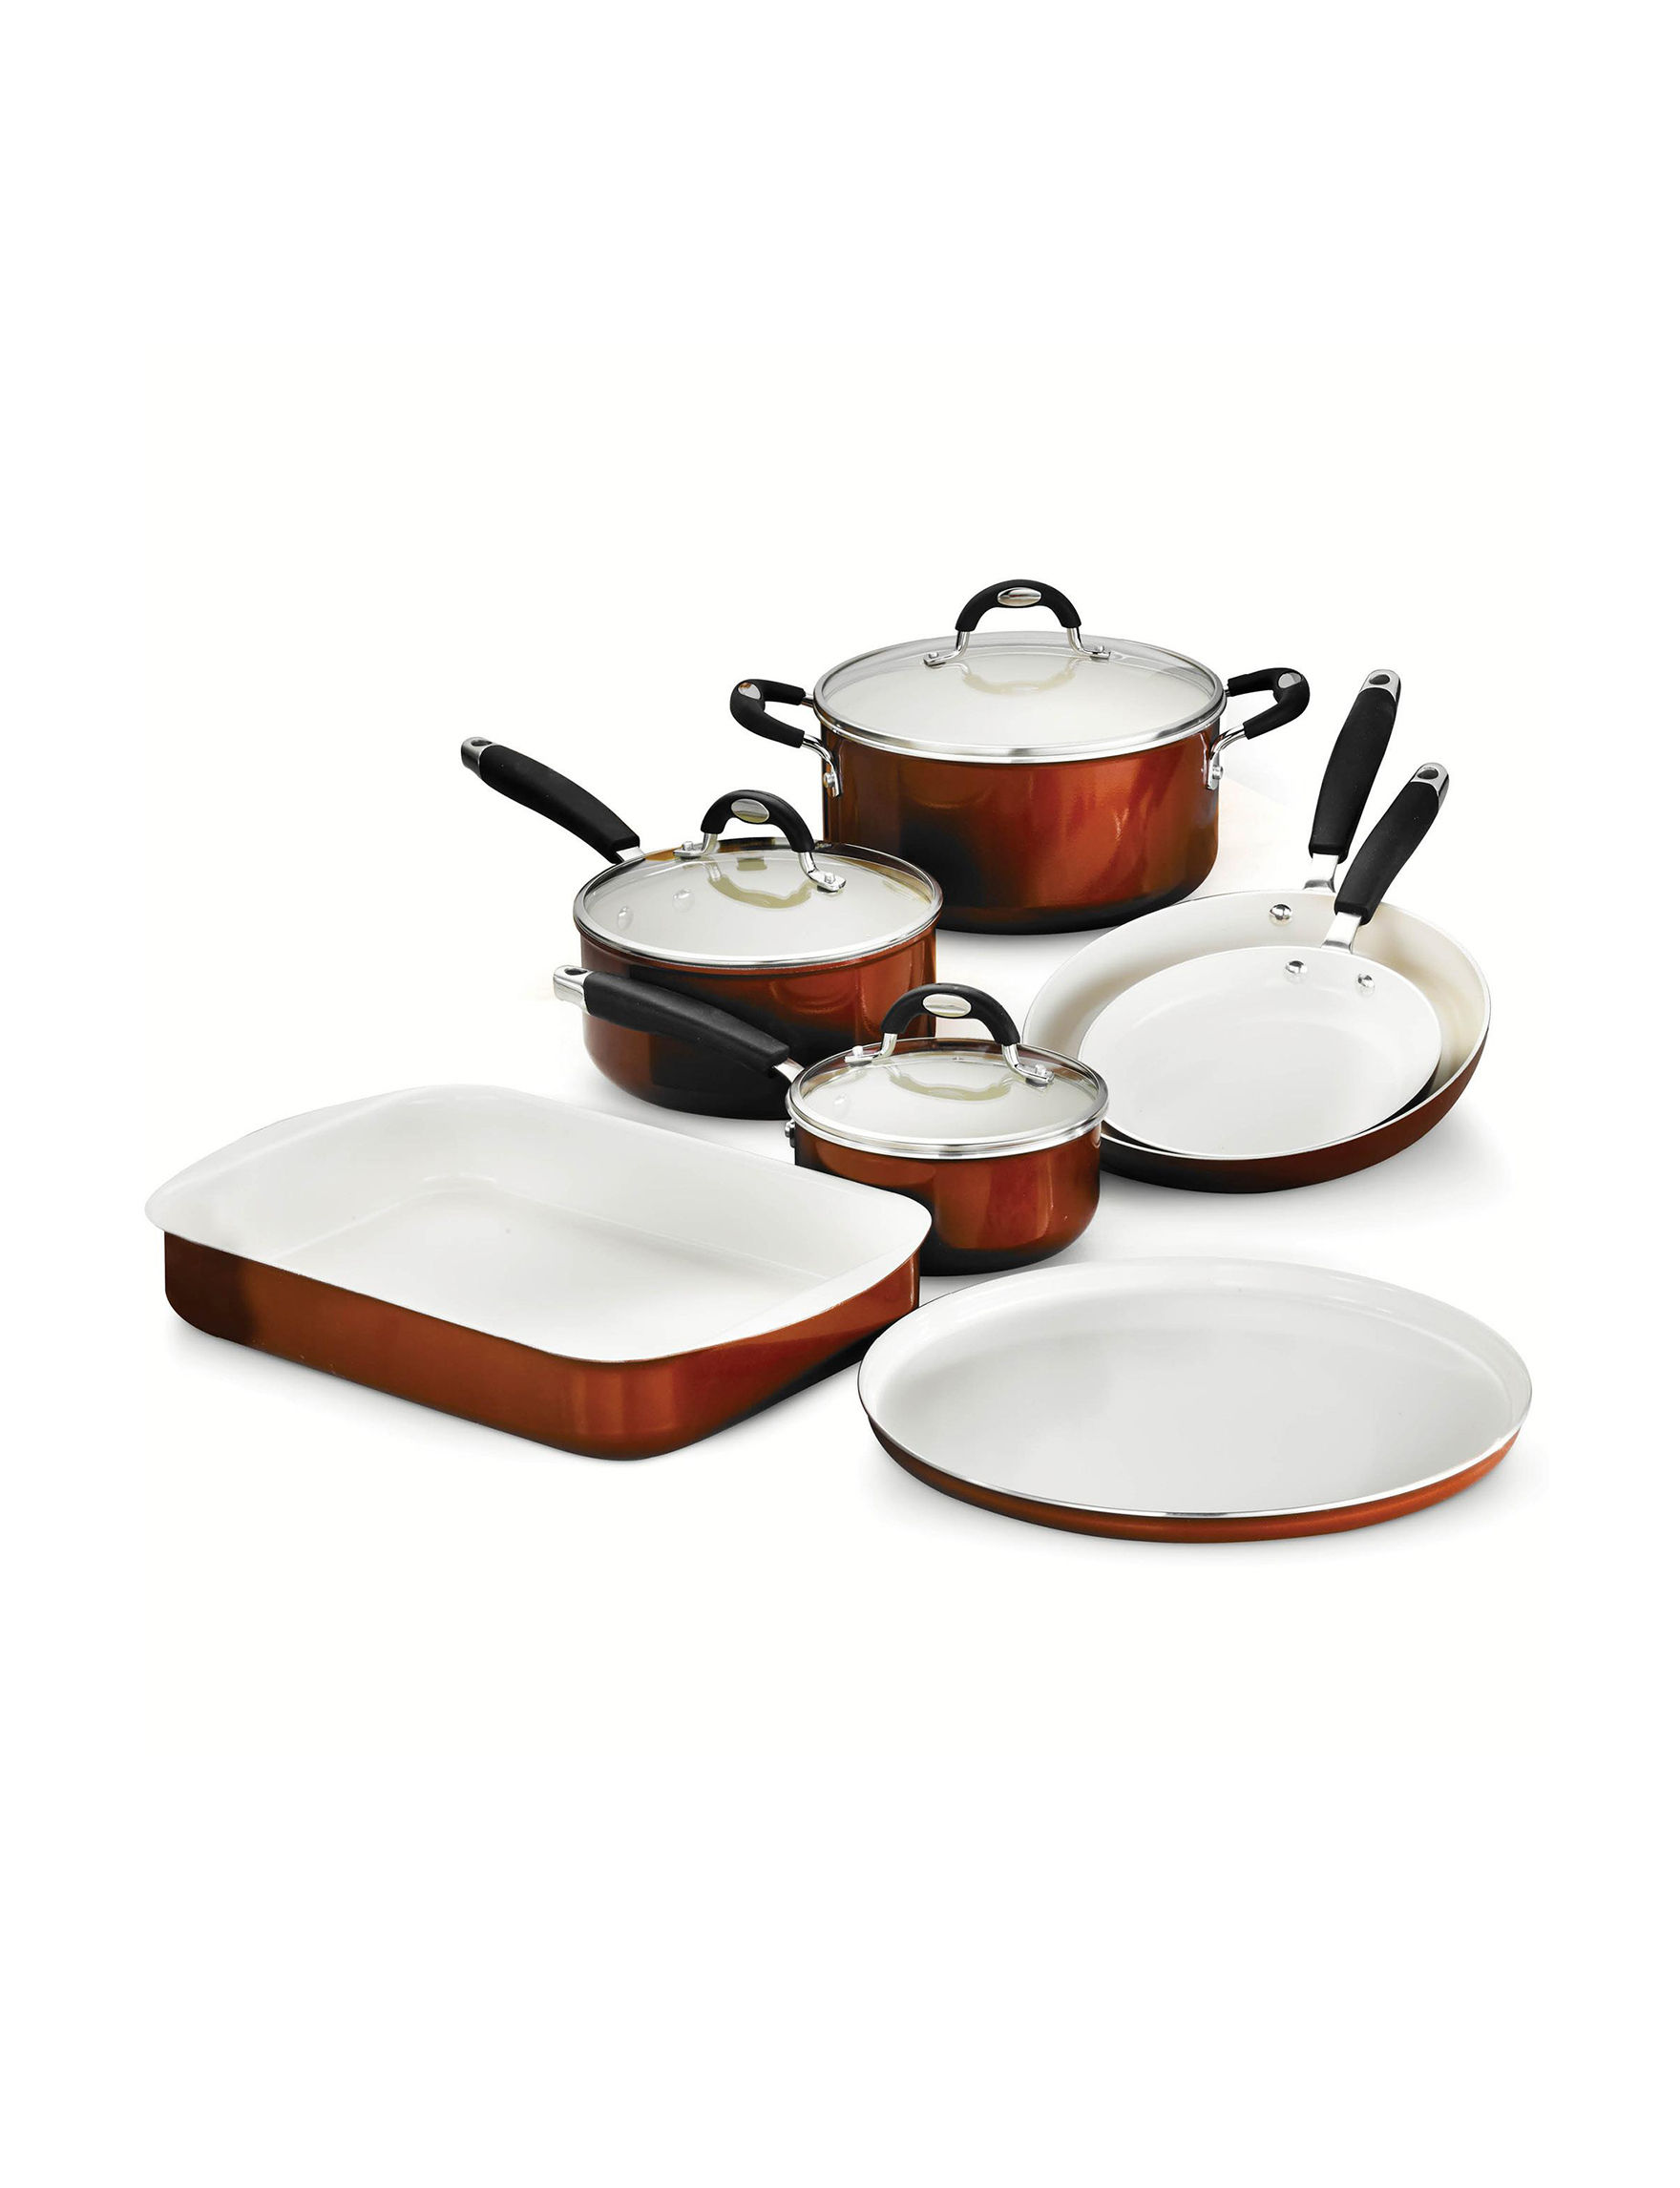 Tramontina Copper Bakeware Sets Cookware Sets Bakeware Cookware